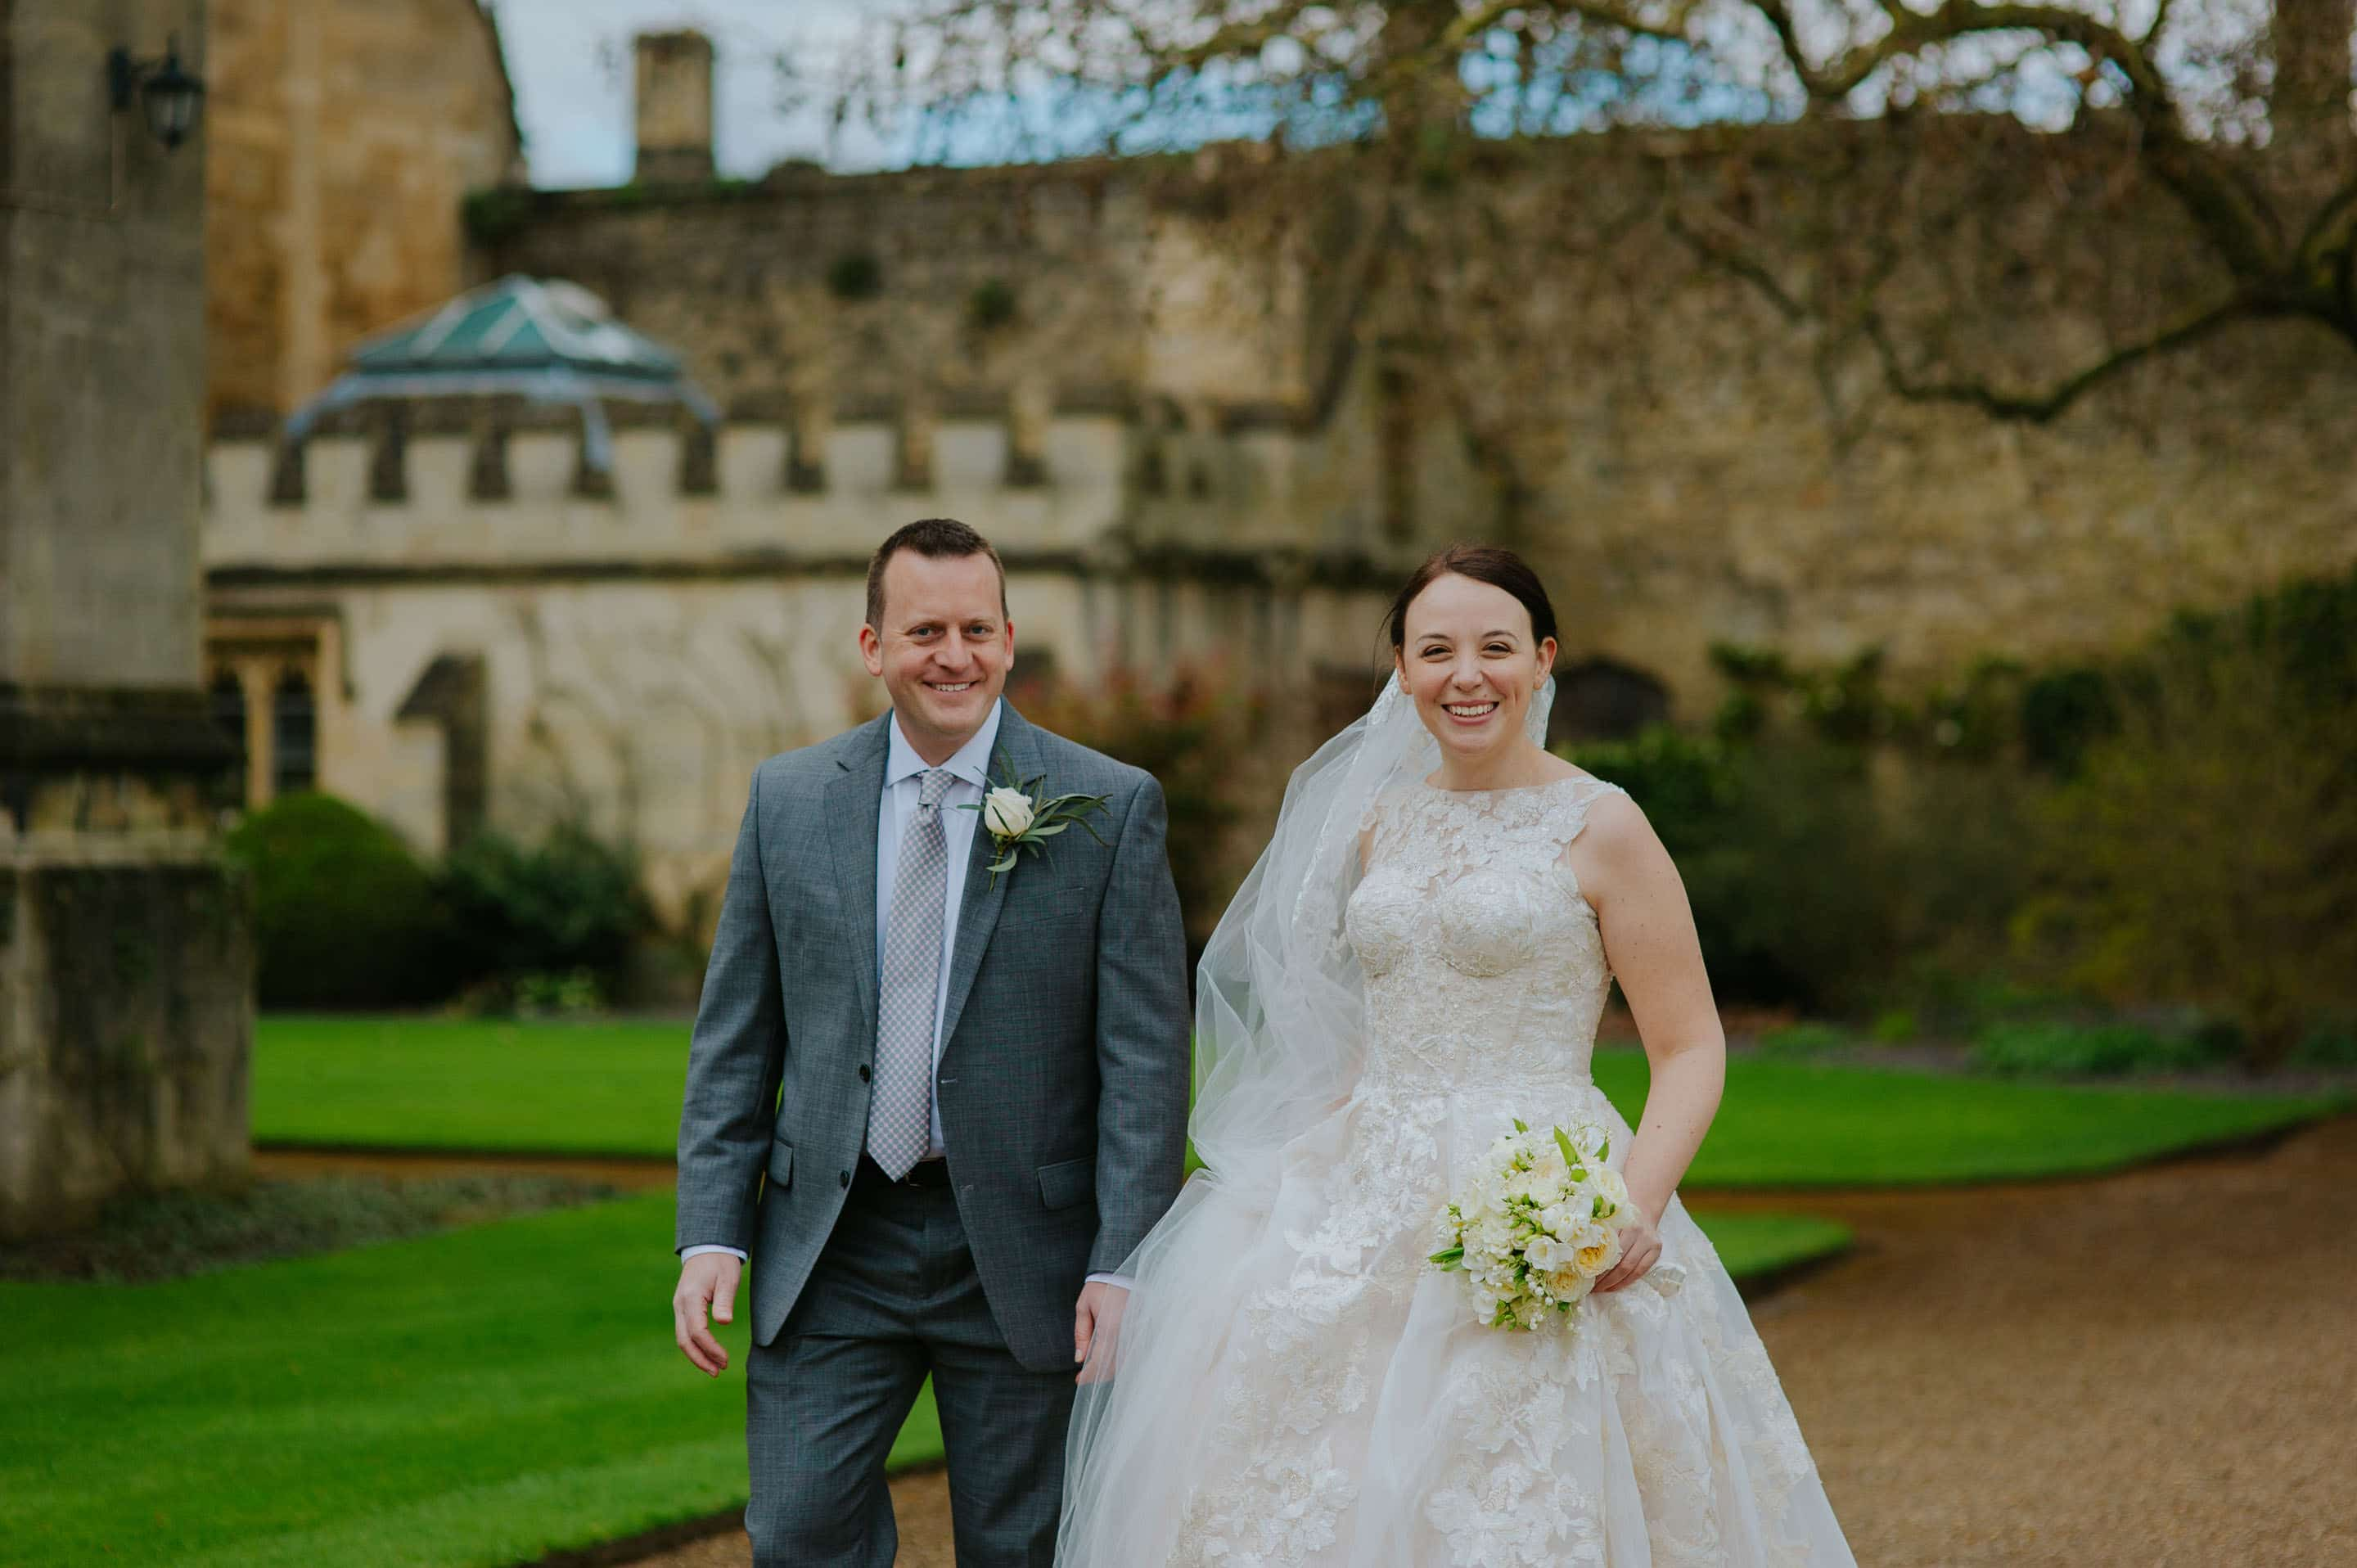 wedding at magdalen college in oxford 19 - Tommie + Virginia | Wedding at Magdalen College in Oxford